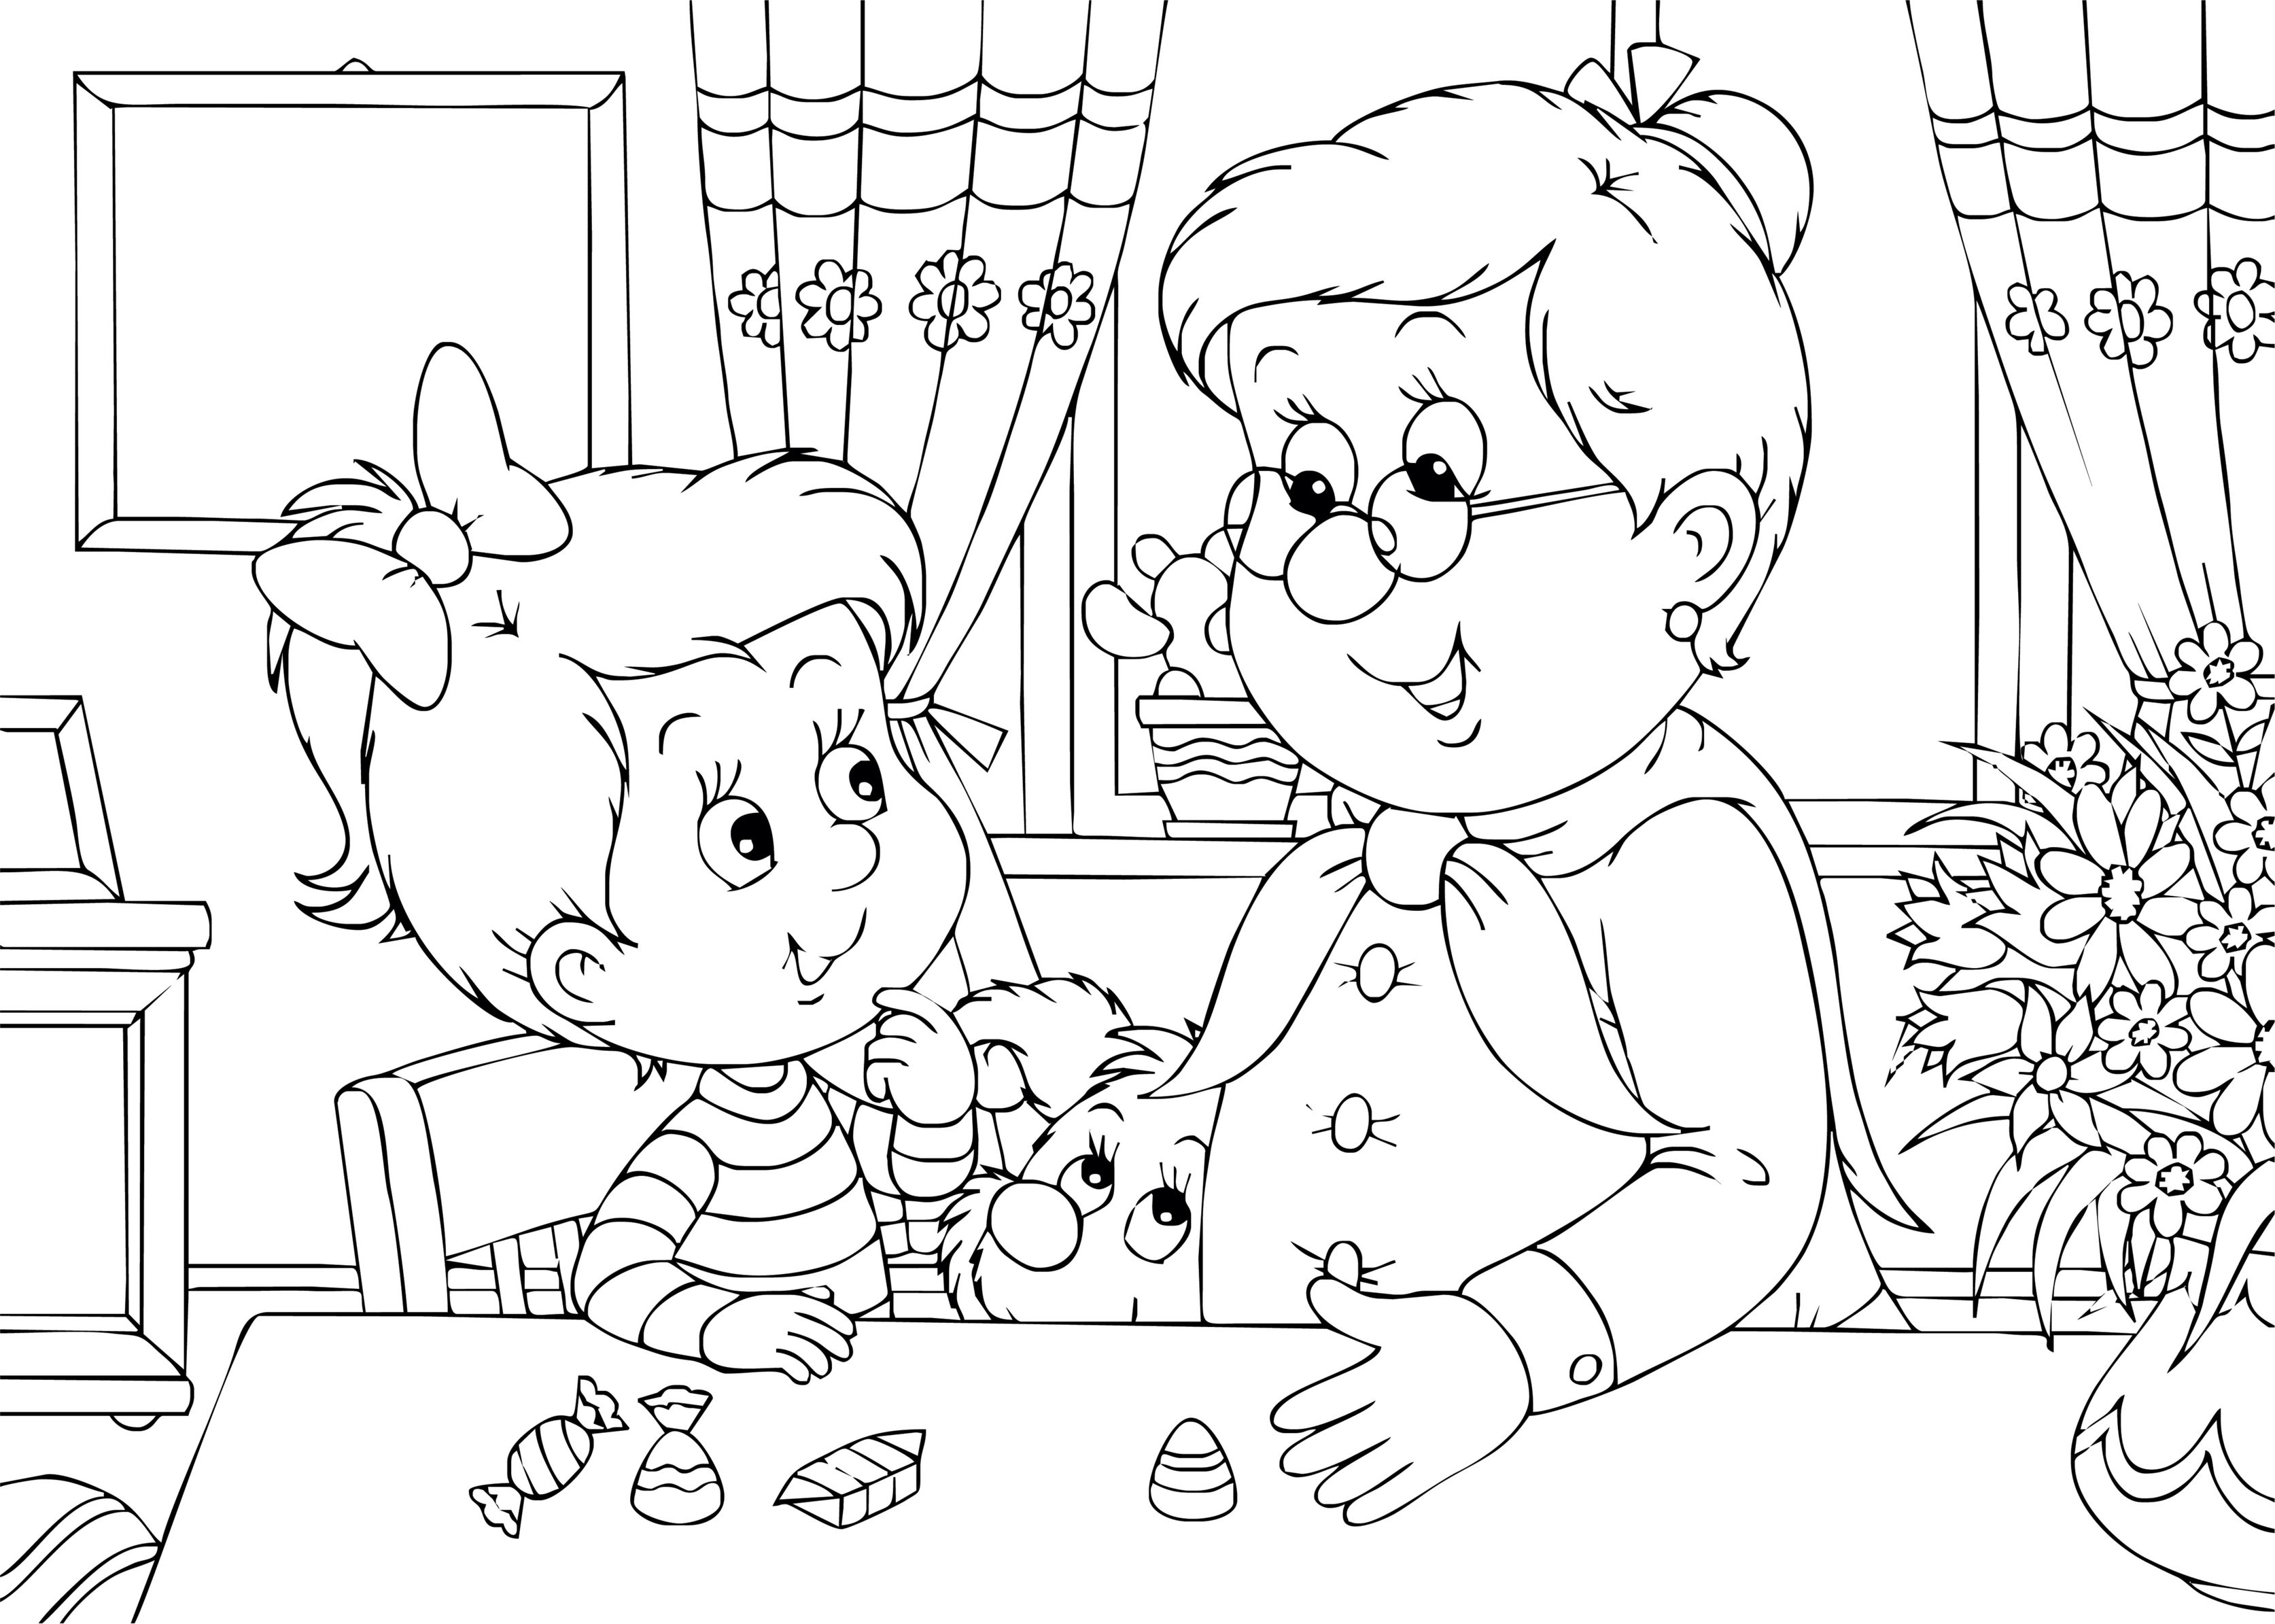 Free printable coloring pages mothers day - Mothers Day Coloring Pages Grandma